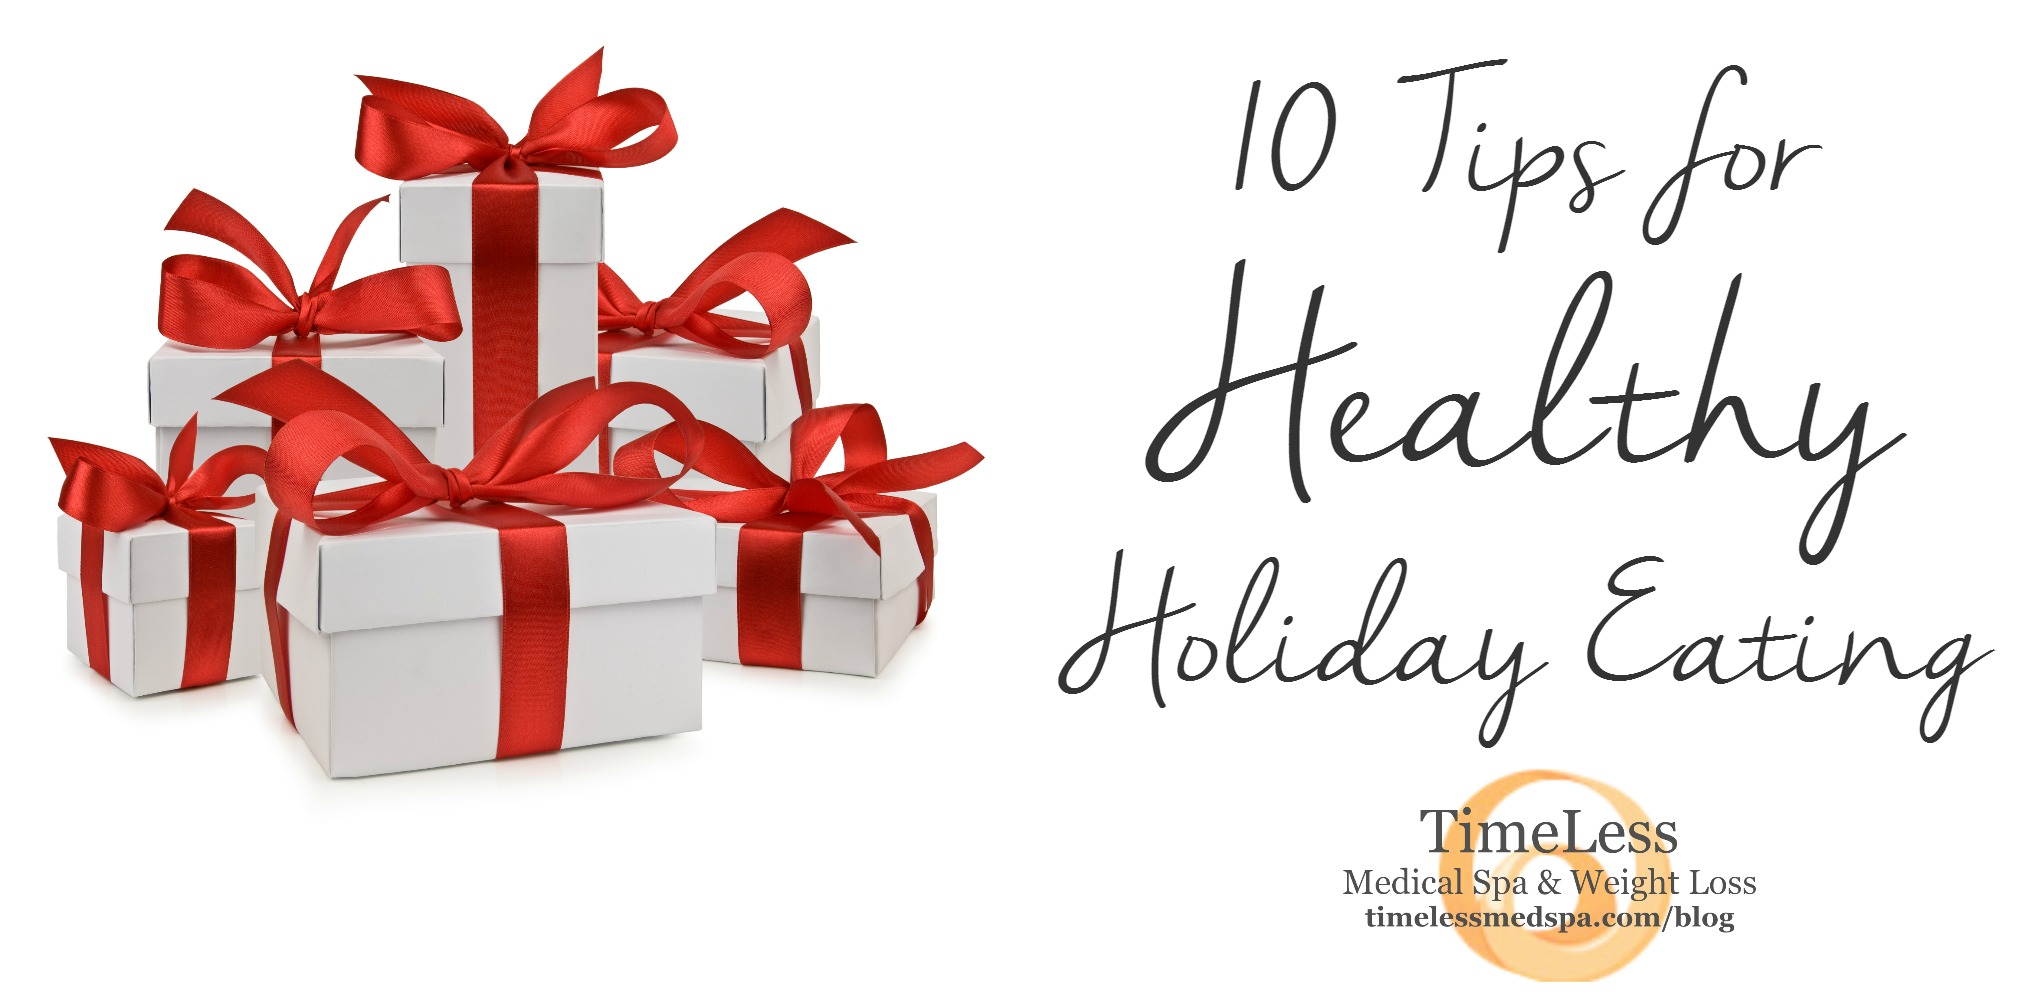 TimeLess 10 Tips for Healthy Holiday Eating // by TimeLess Medical Weight Loss in Ogden, Utah